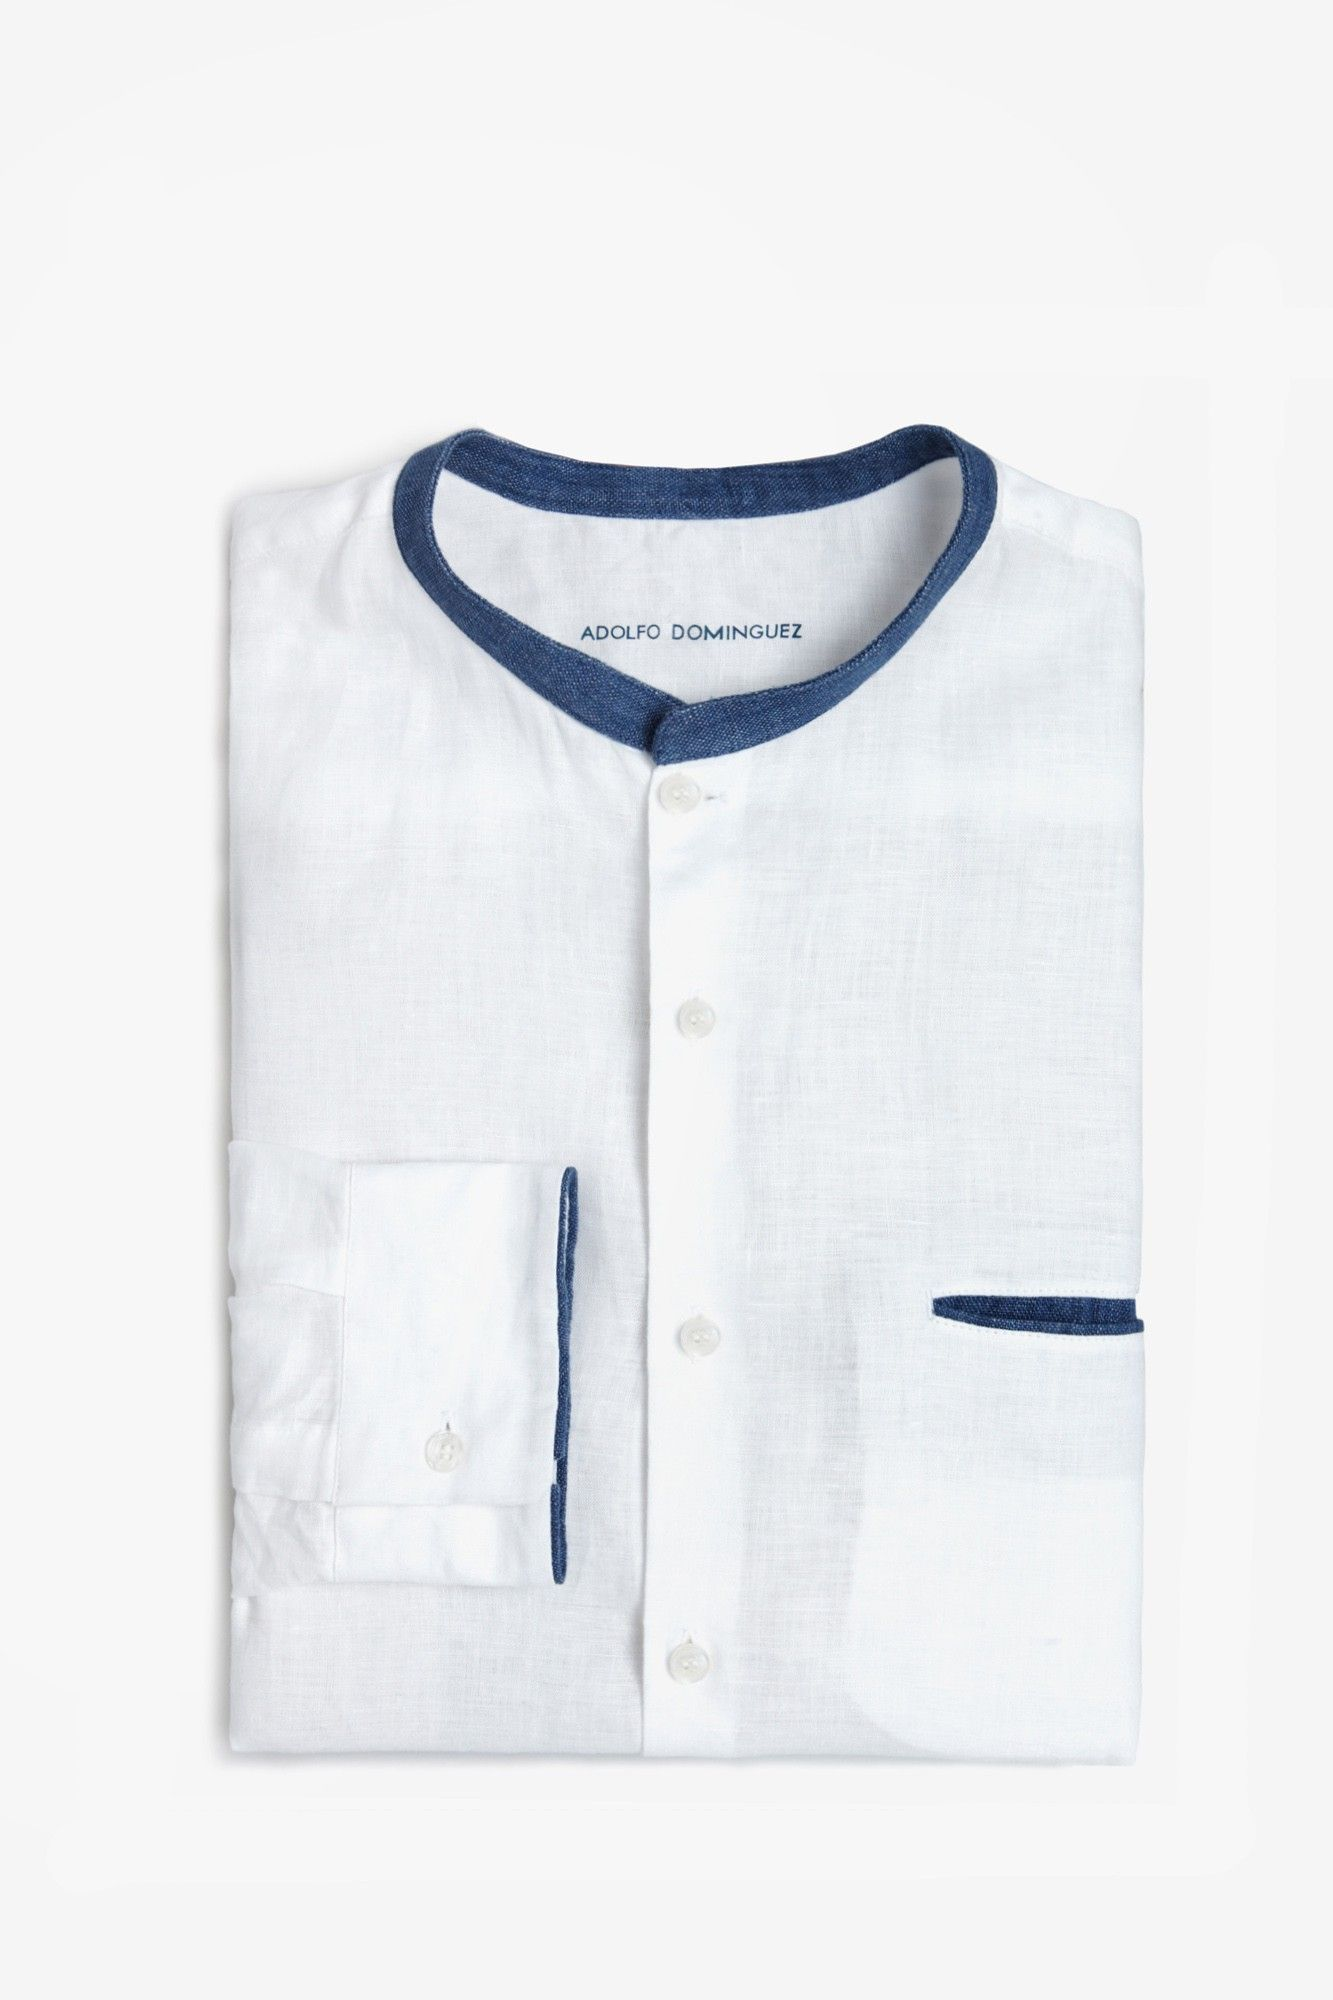 3a1198aa Contrasting Linen Shirt - casual shirts | Adolfo Dominguez. Contrasting  Linen Shirt - casual shirts | Adolfo Dominguez Men's Fashion, Fashion  Outfits ...